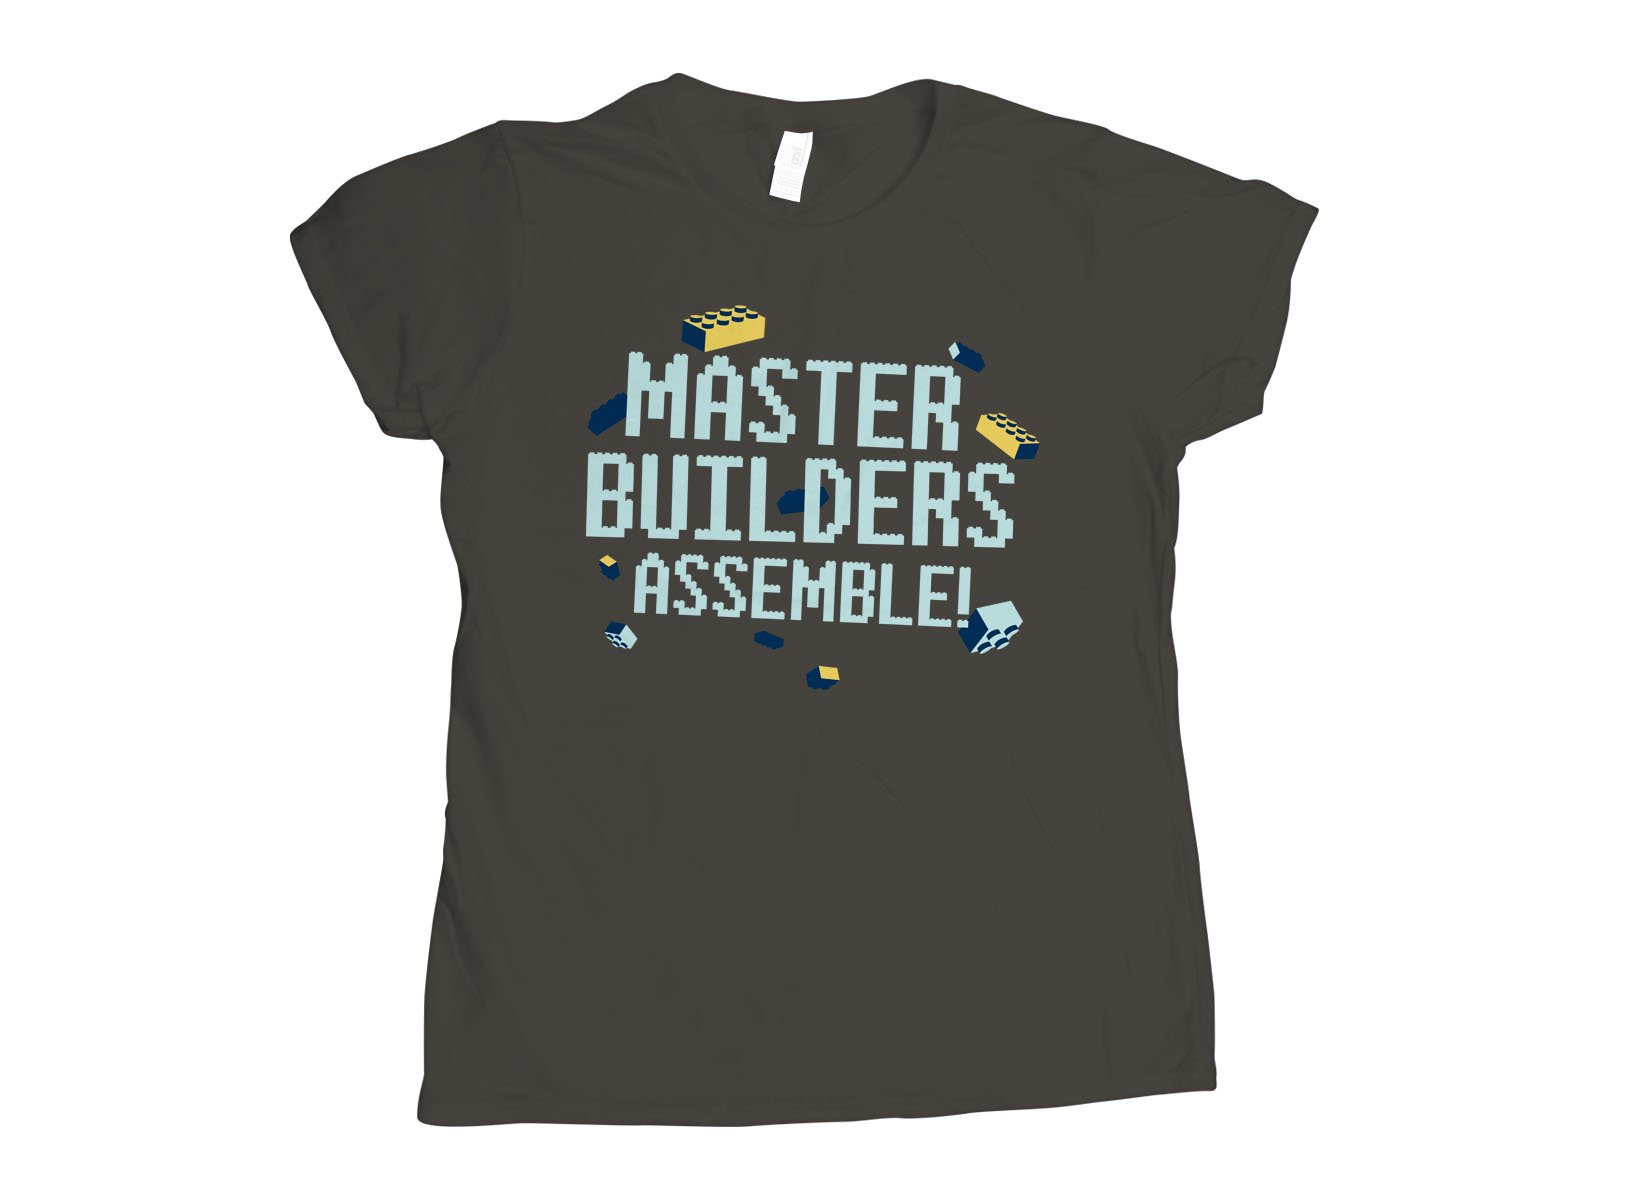 Master Builders Assemble! on Womens T-Shirt